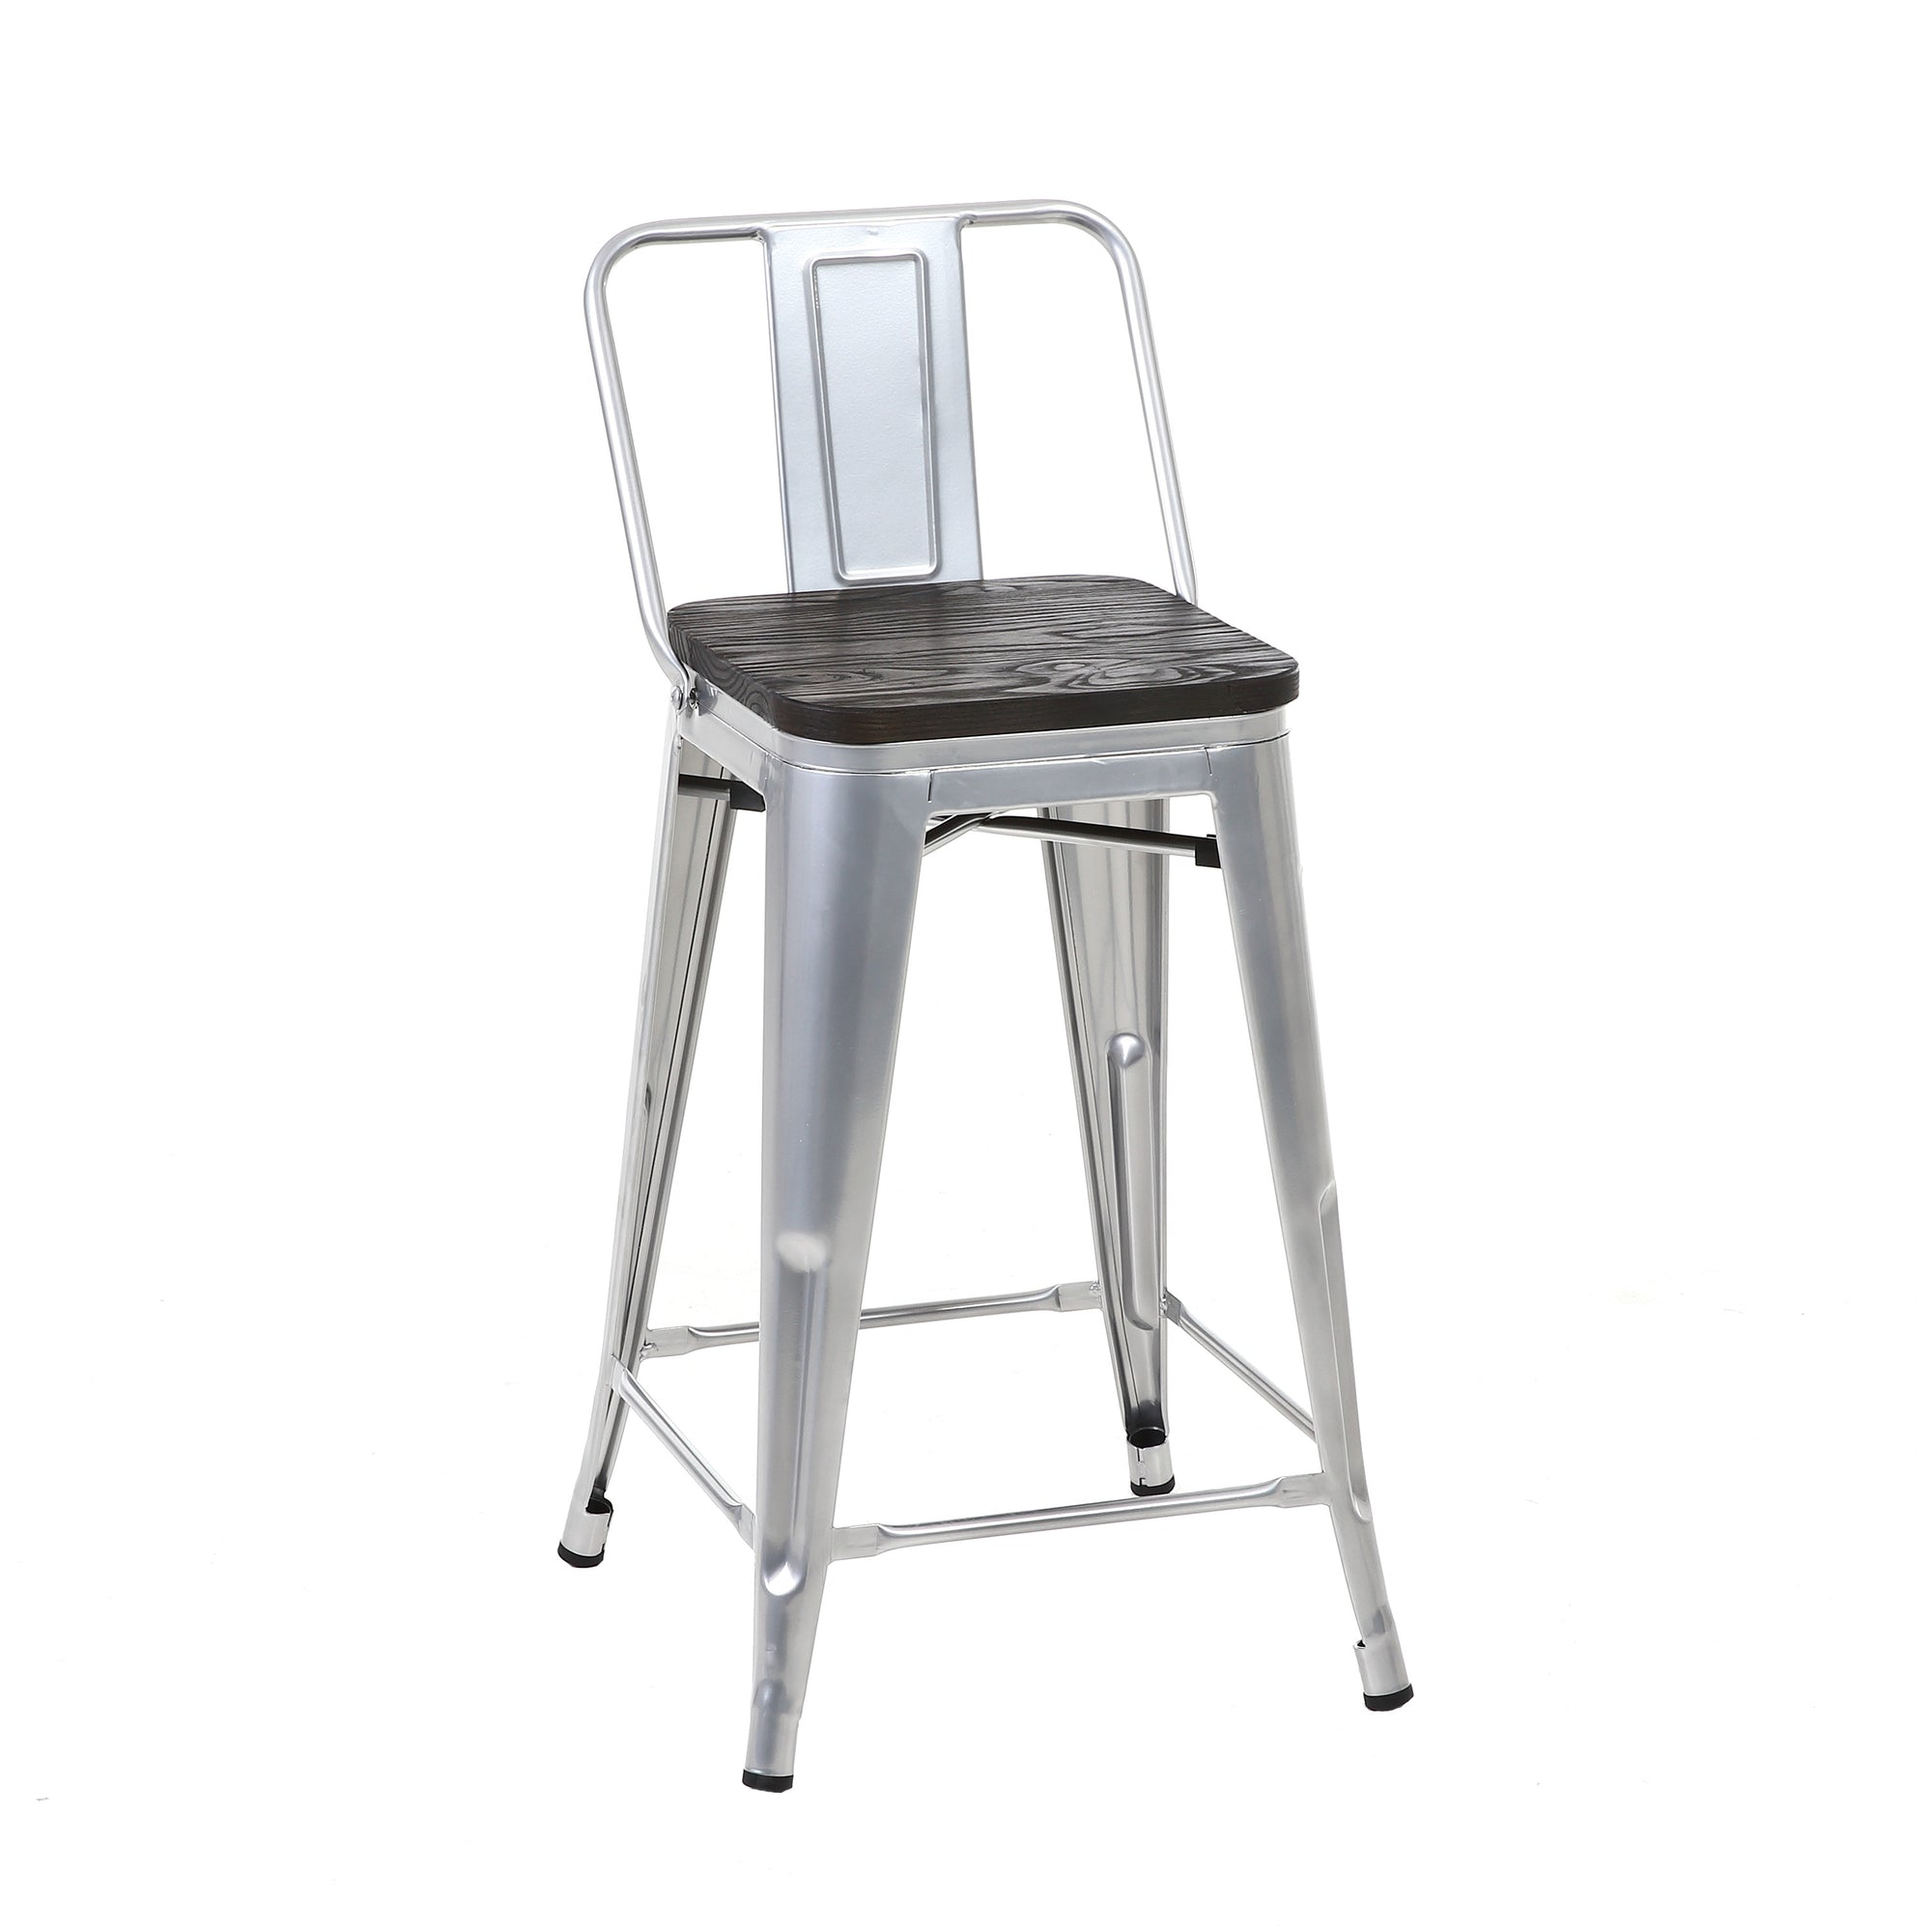 Superb Buschman Set Of 4 Grey Wooden Seat 24 Inch Counter Height Metal Bar Stools With Medium Back Indoor Outdoor Forskolin Free Trial Chair Design Images Forskolin Free Trialorg